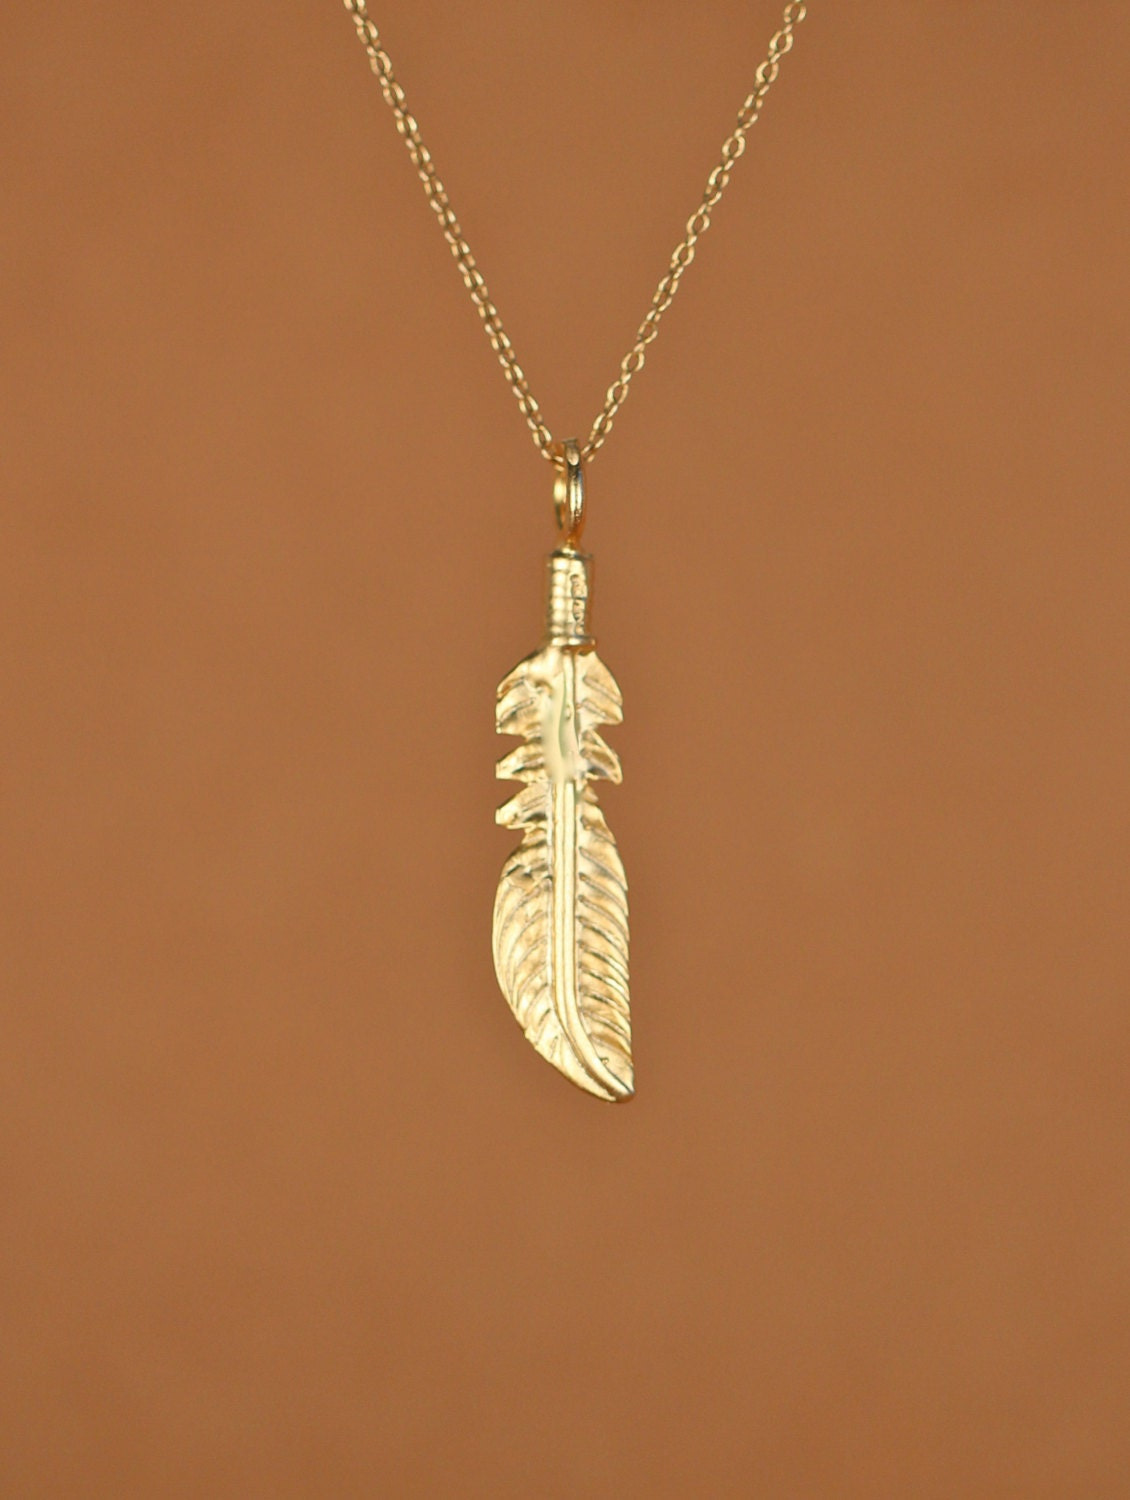 feather necklace gold feather necklace layering necklace